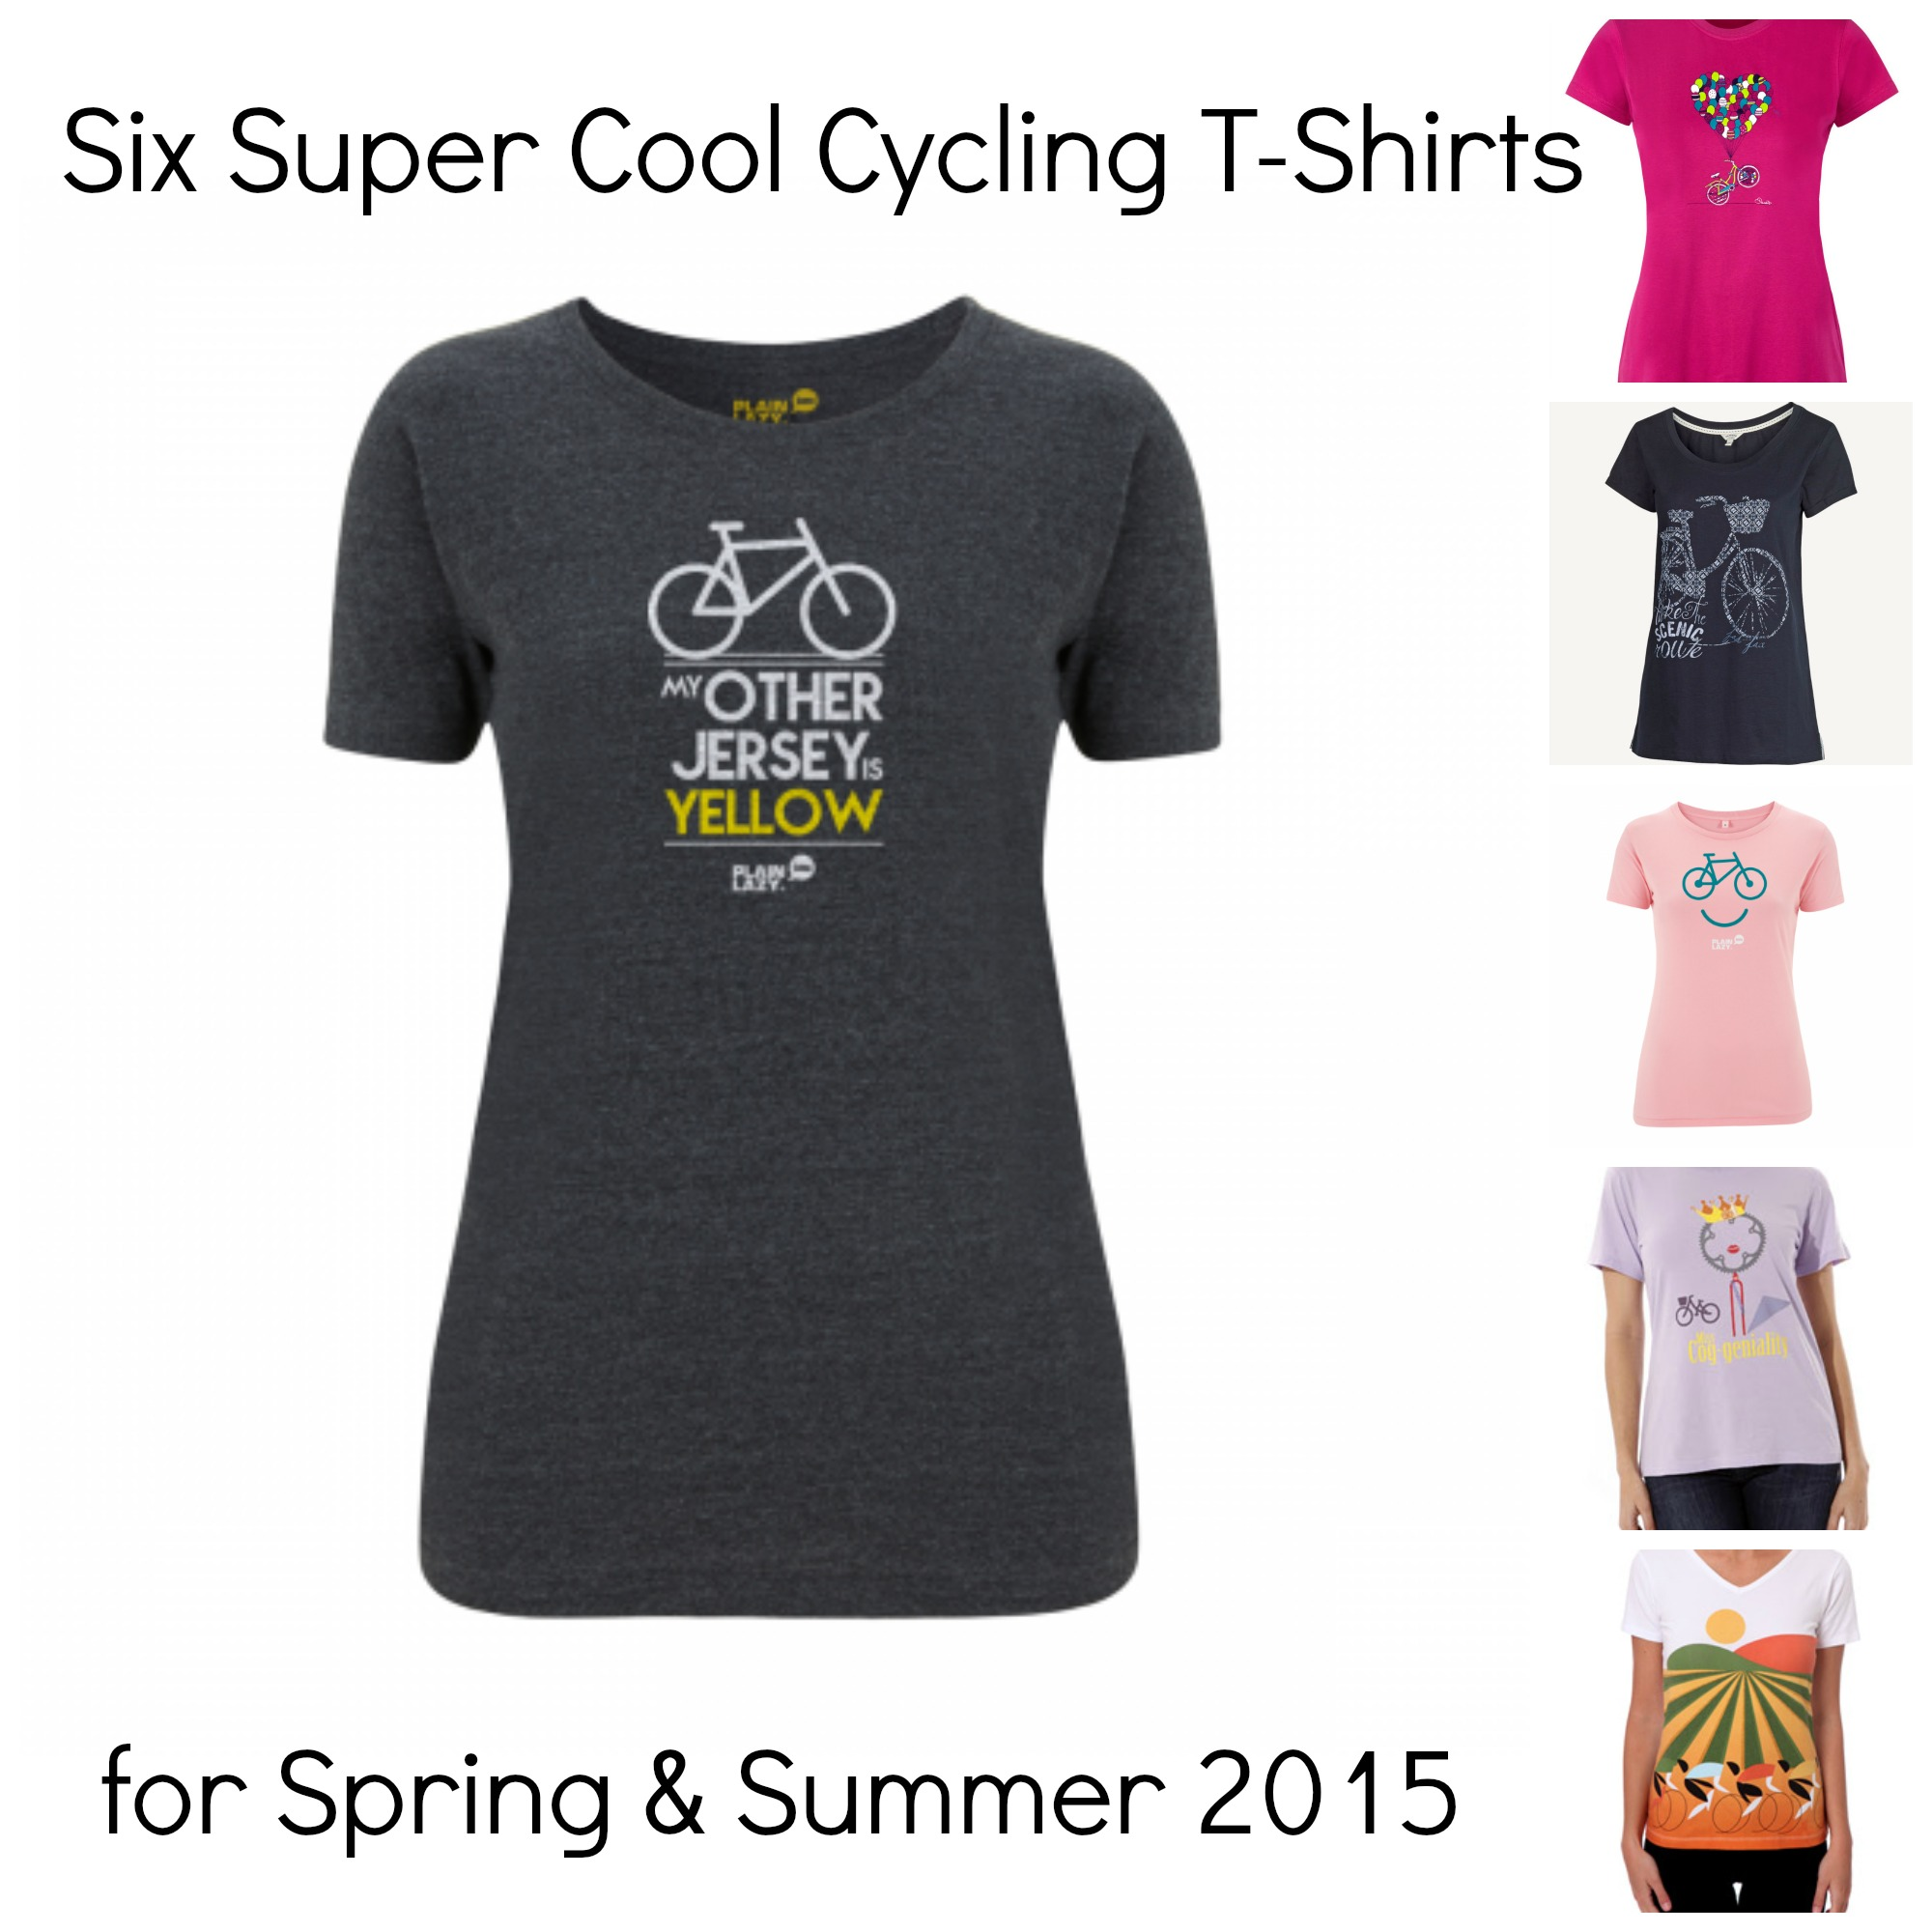 super six cool cycling t shirts for under 25. Black Bedroom Furniture Sets. Home Design Ideas